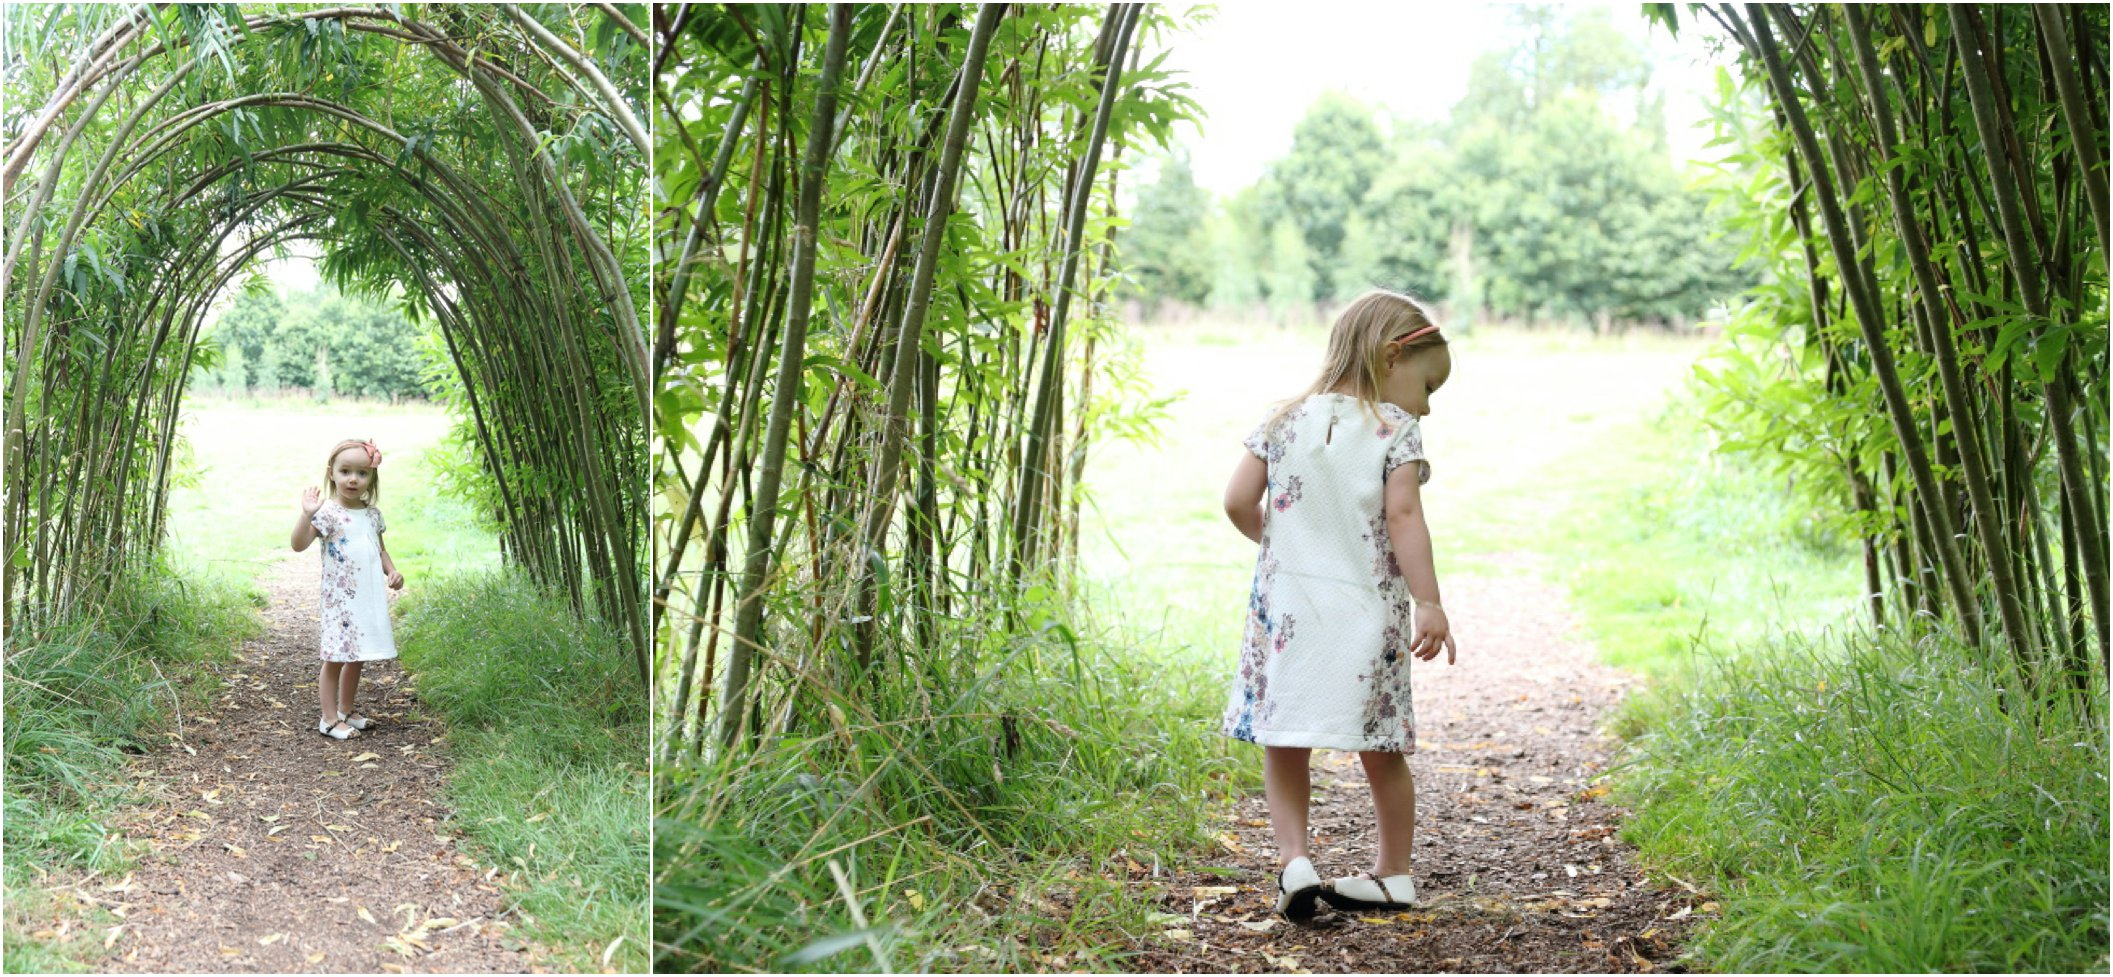 childrens photography at east town park in Suffolk